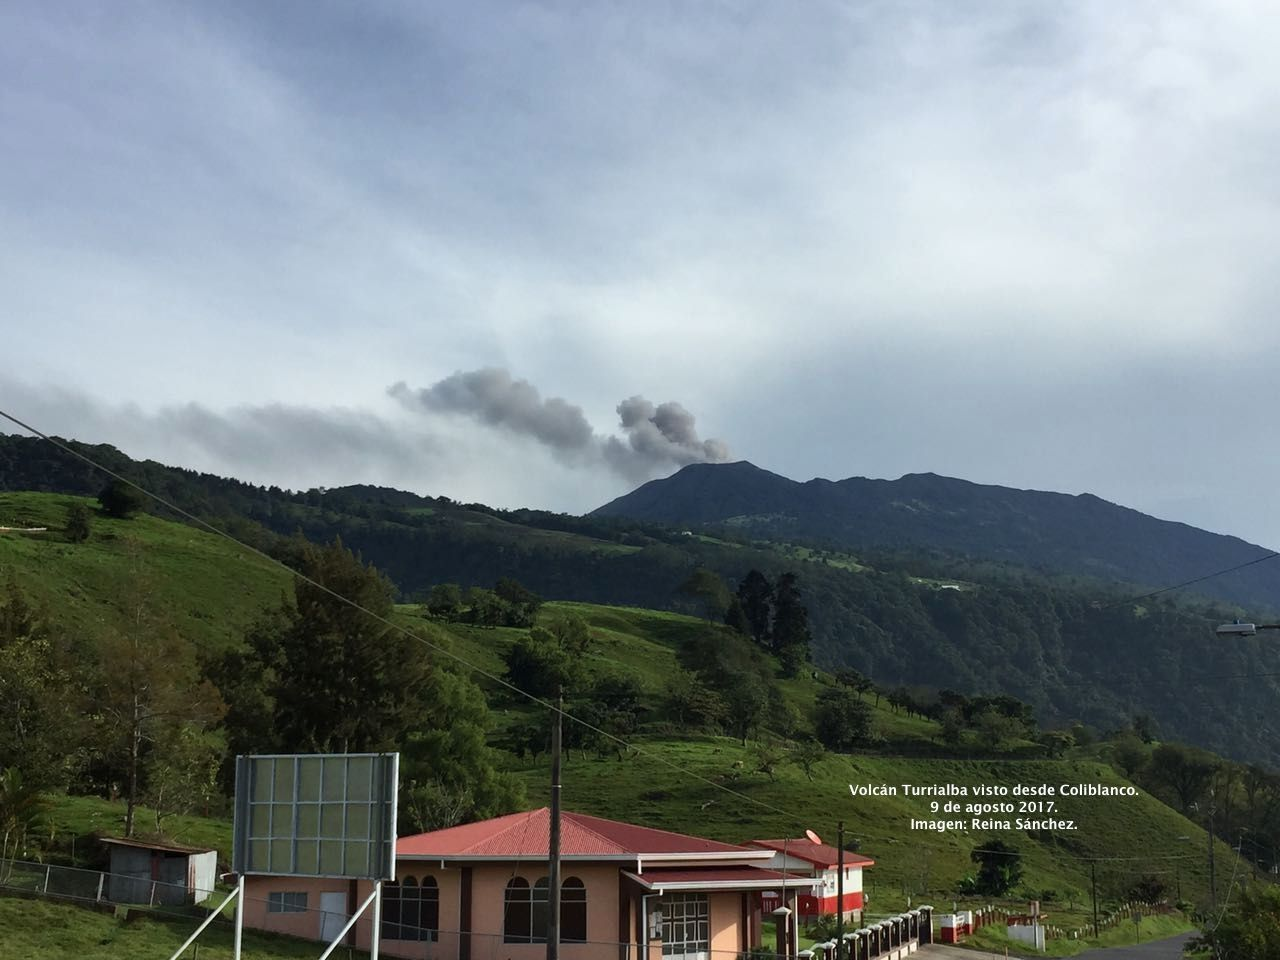 Turrialba - 09.08.2017 / 7h locale   - photo Reina Sanchez  via Ovsicori